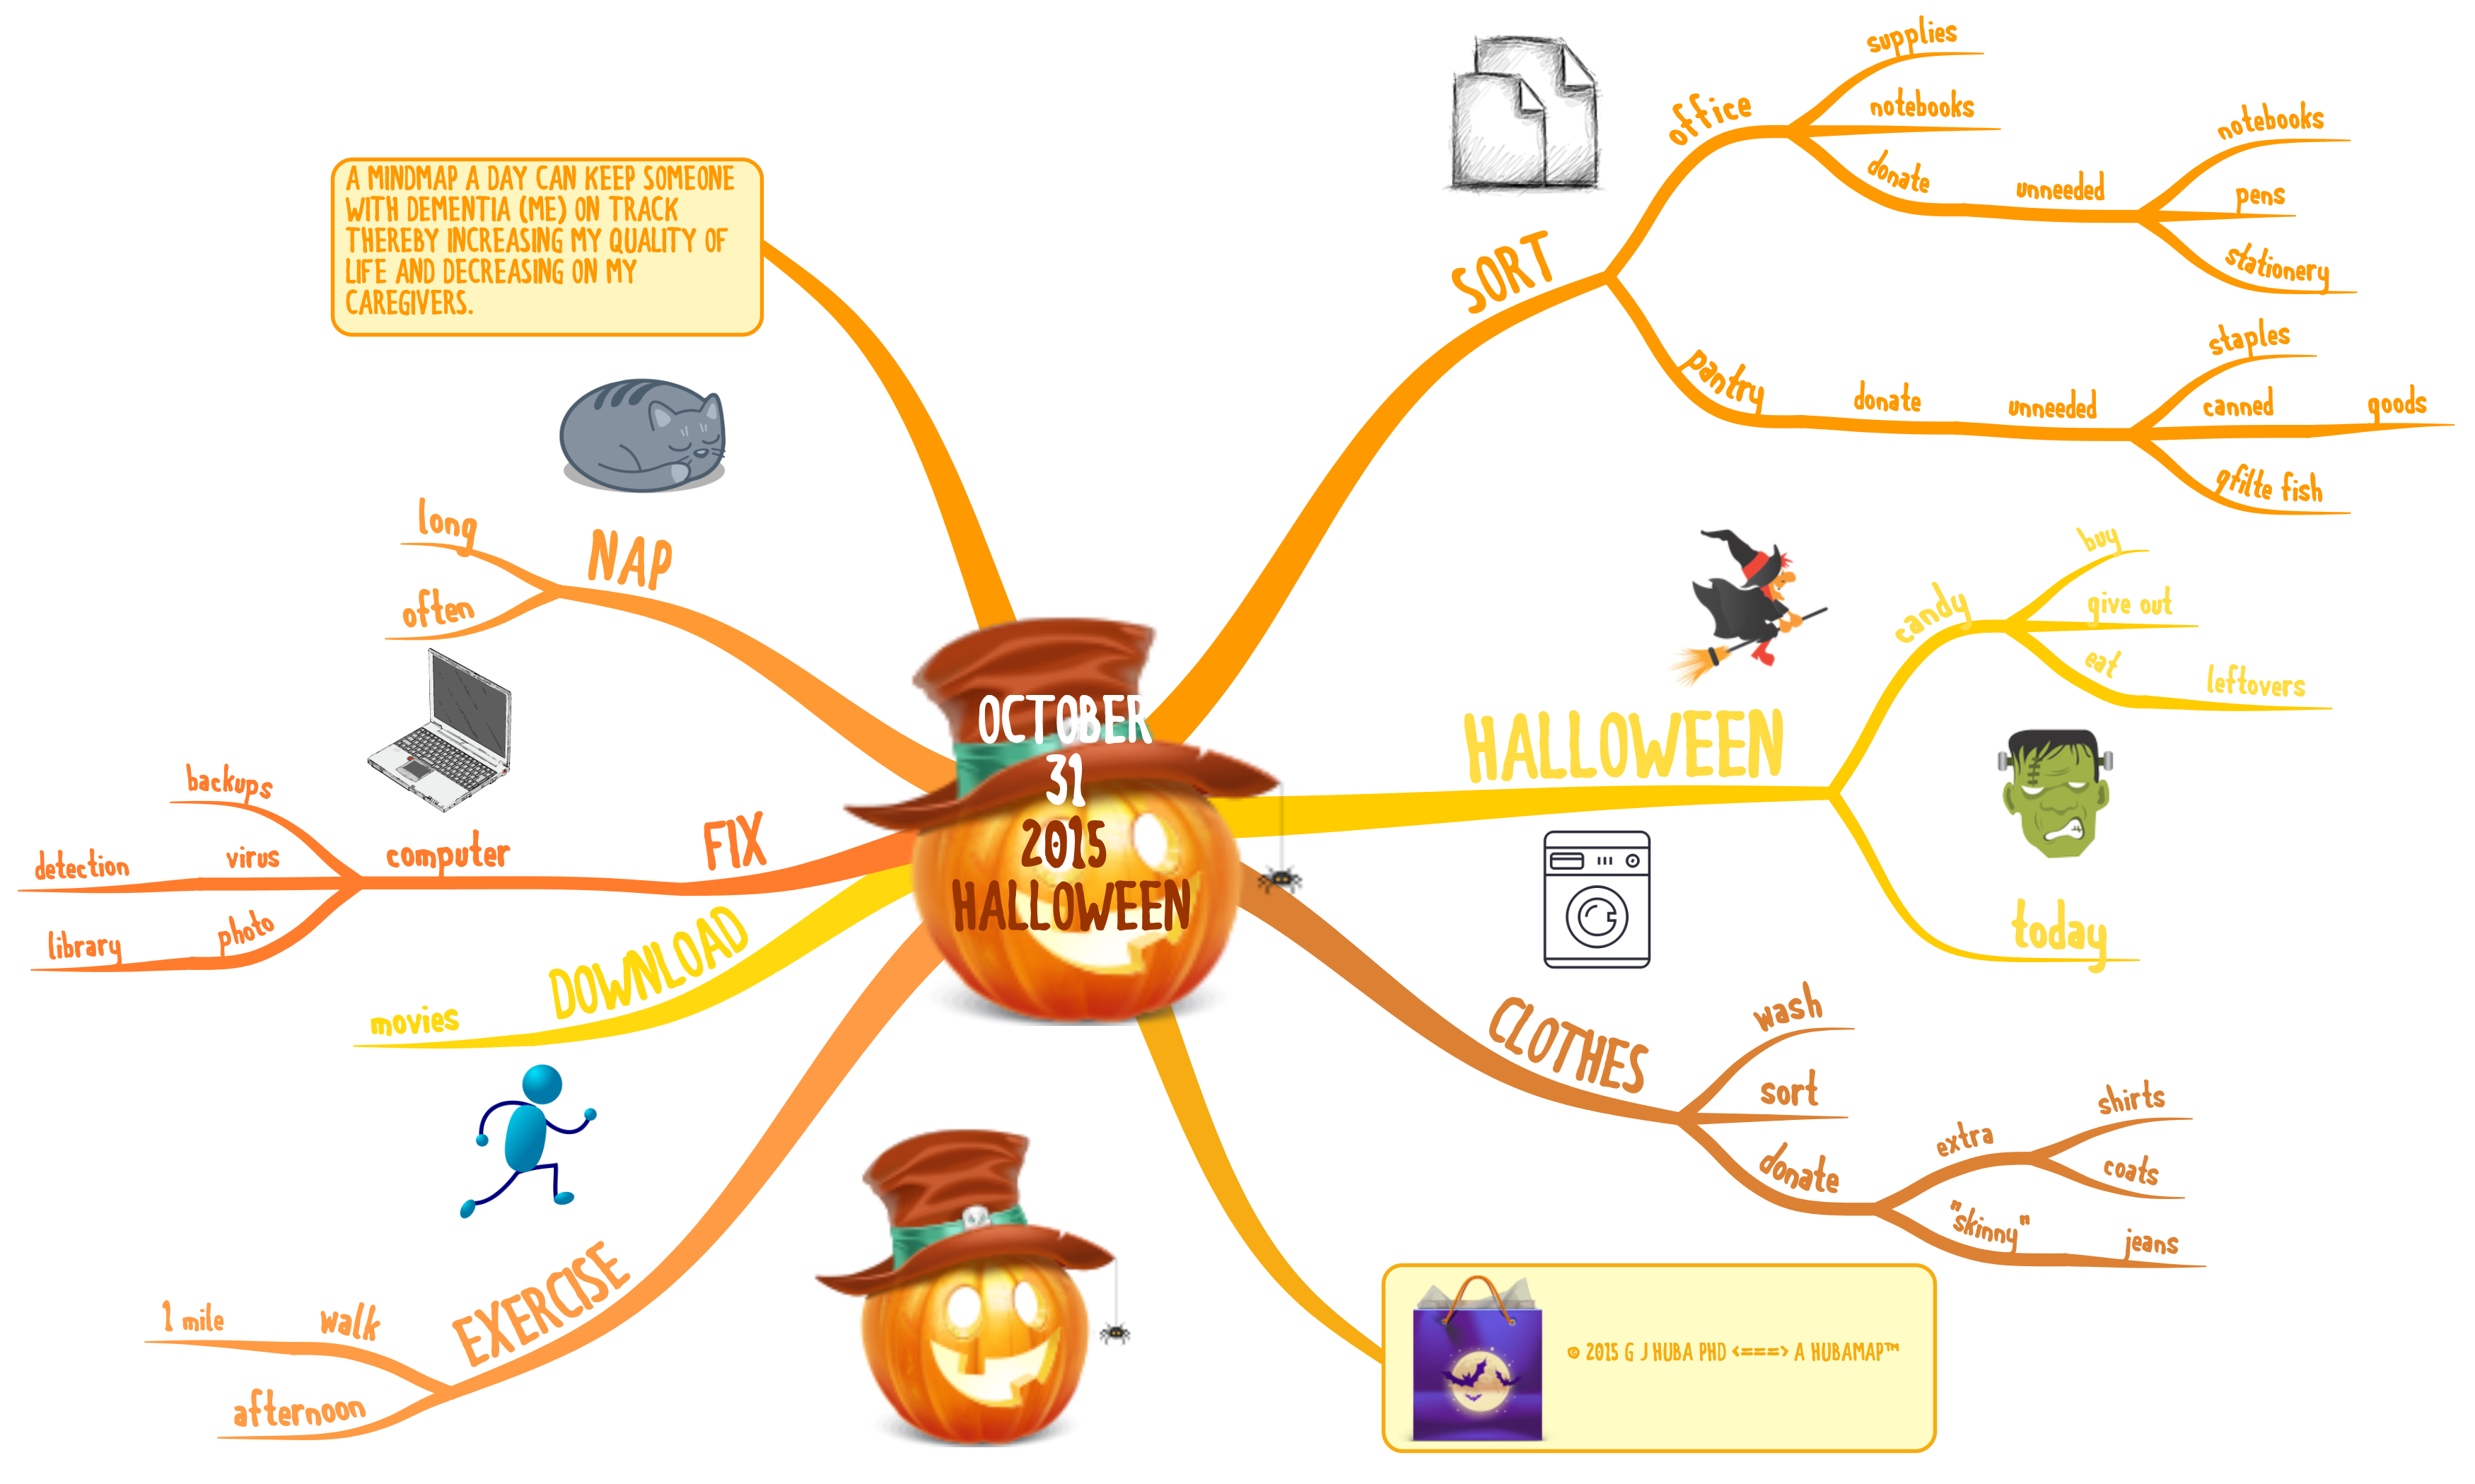 give everyone with dementia a great pumpkin mindmap for